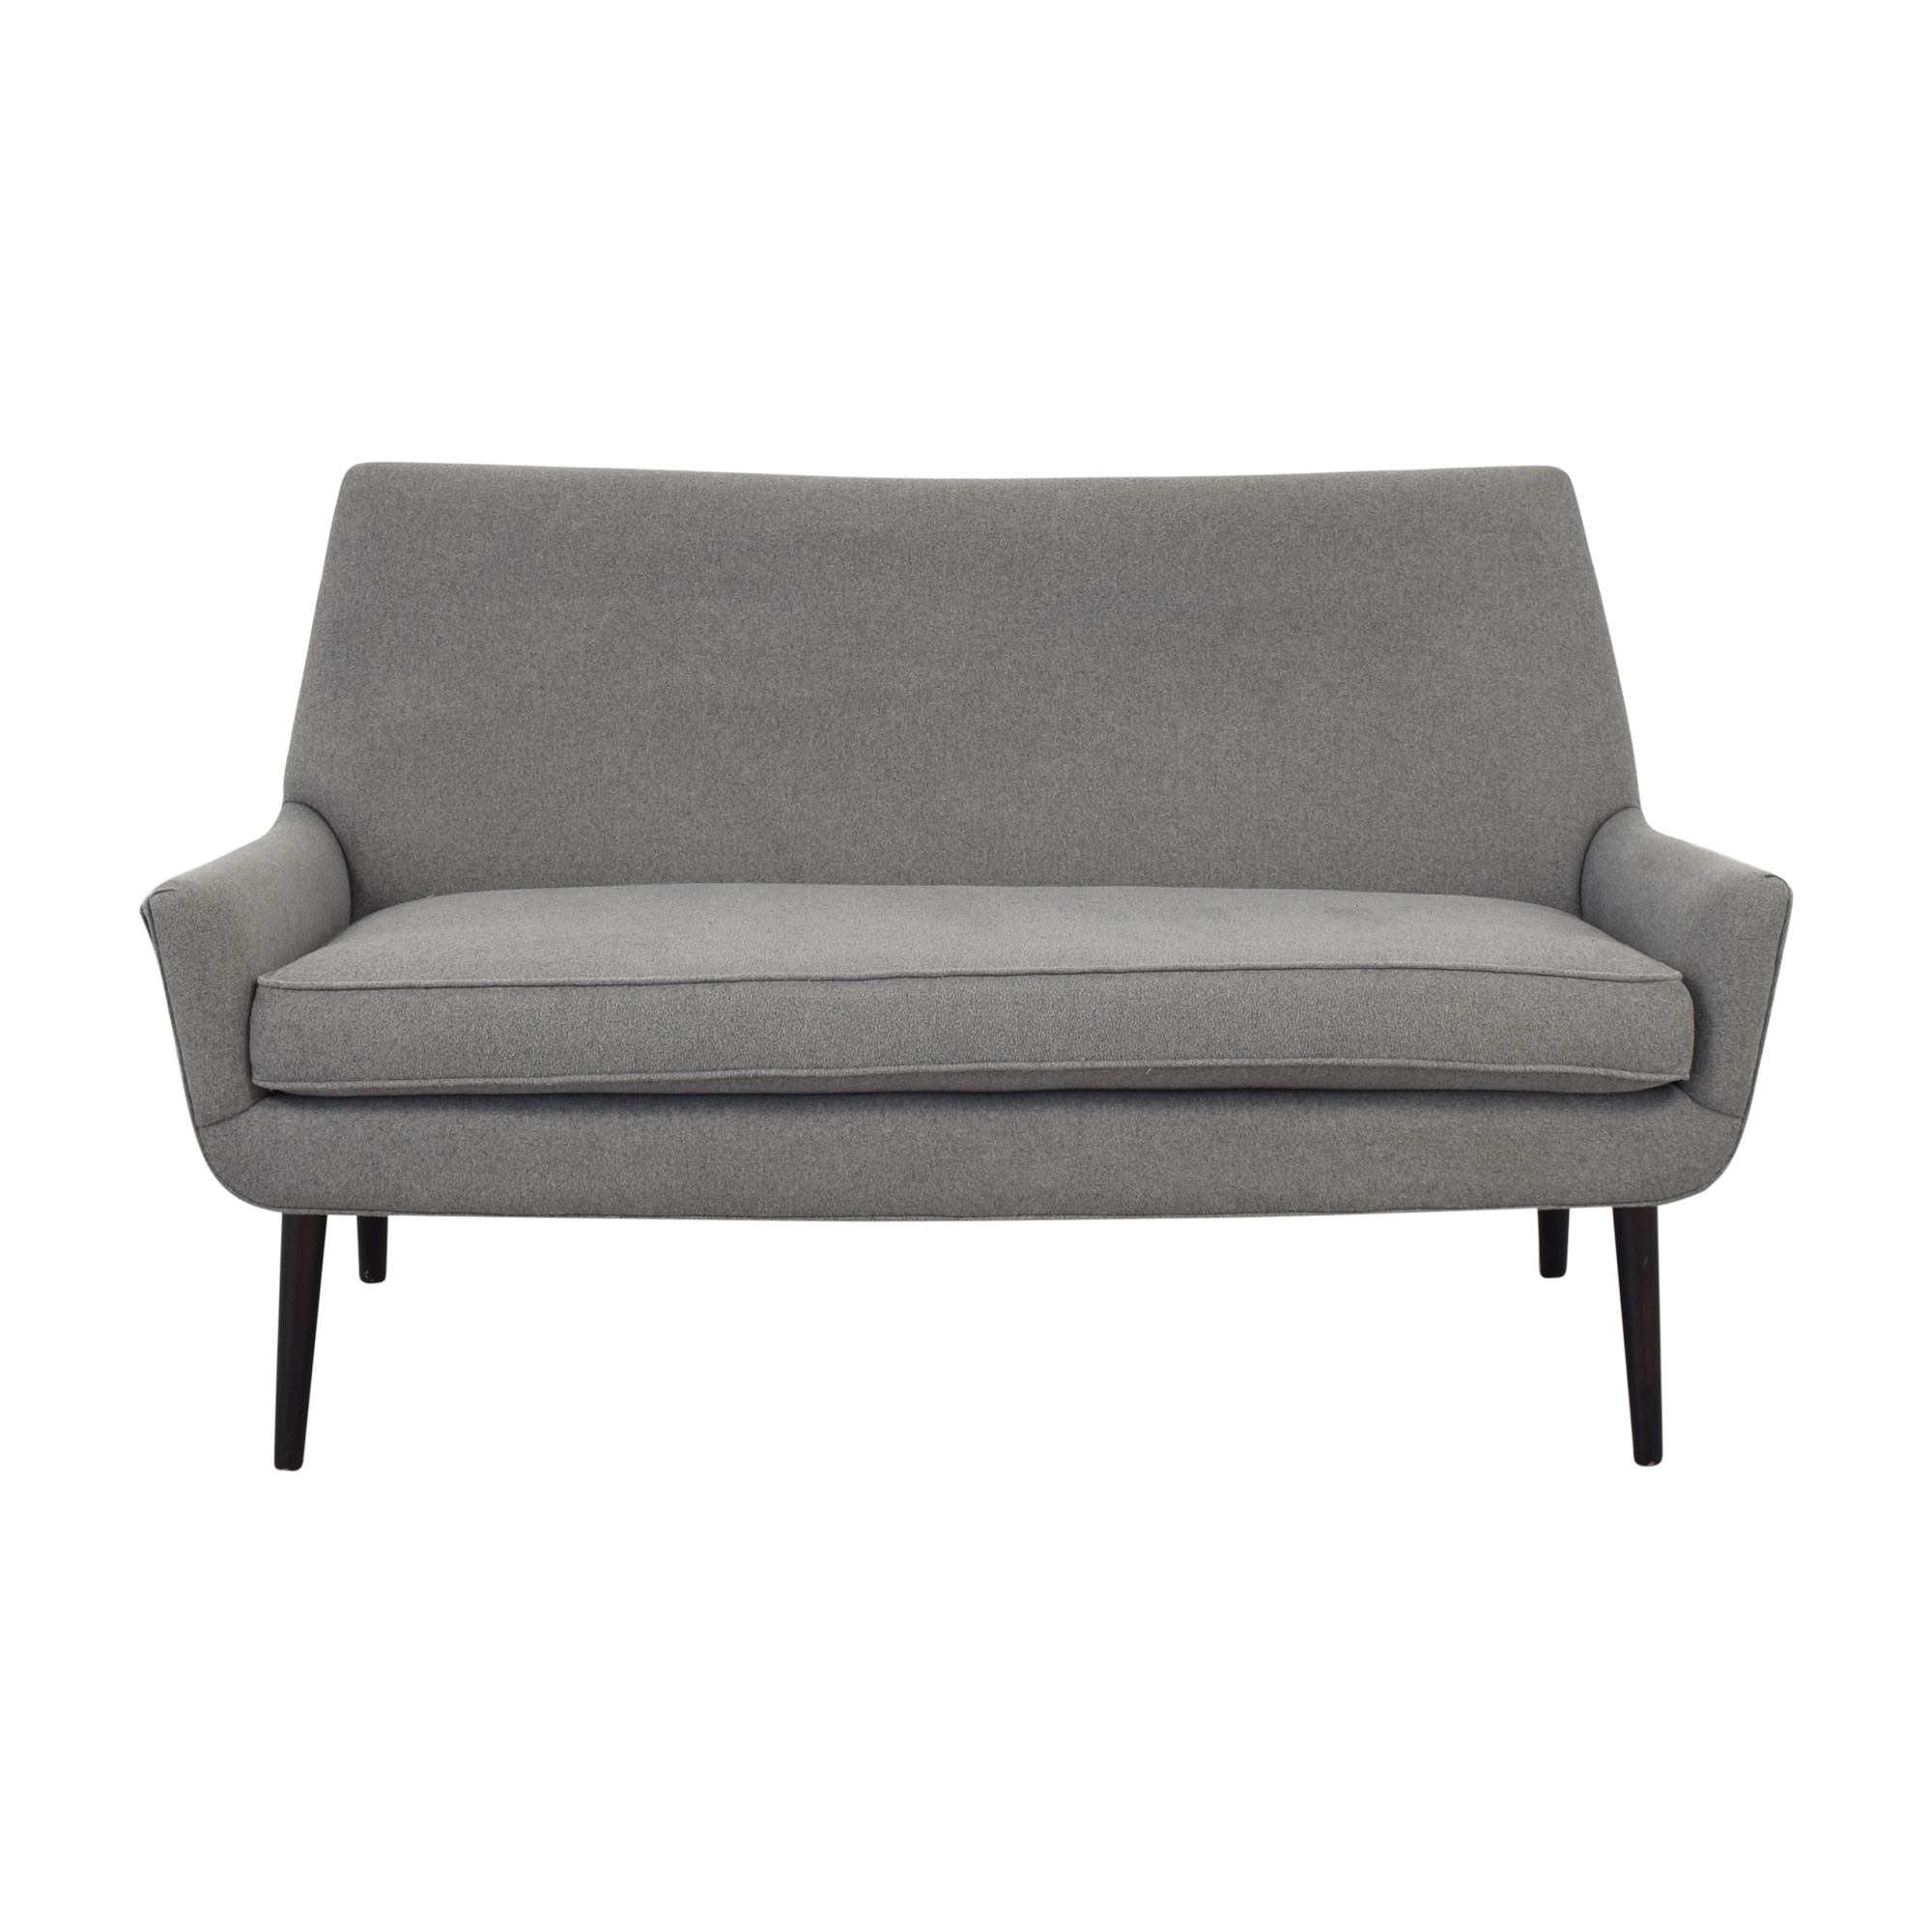 ABC Carpet & Home ABC Carpet & Home Grey Sofa Loveseat nj